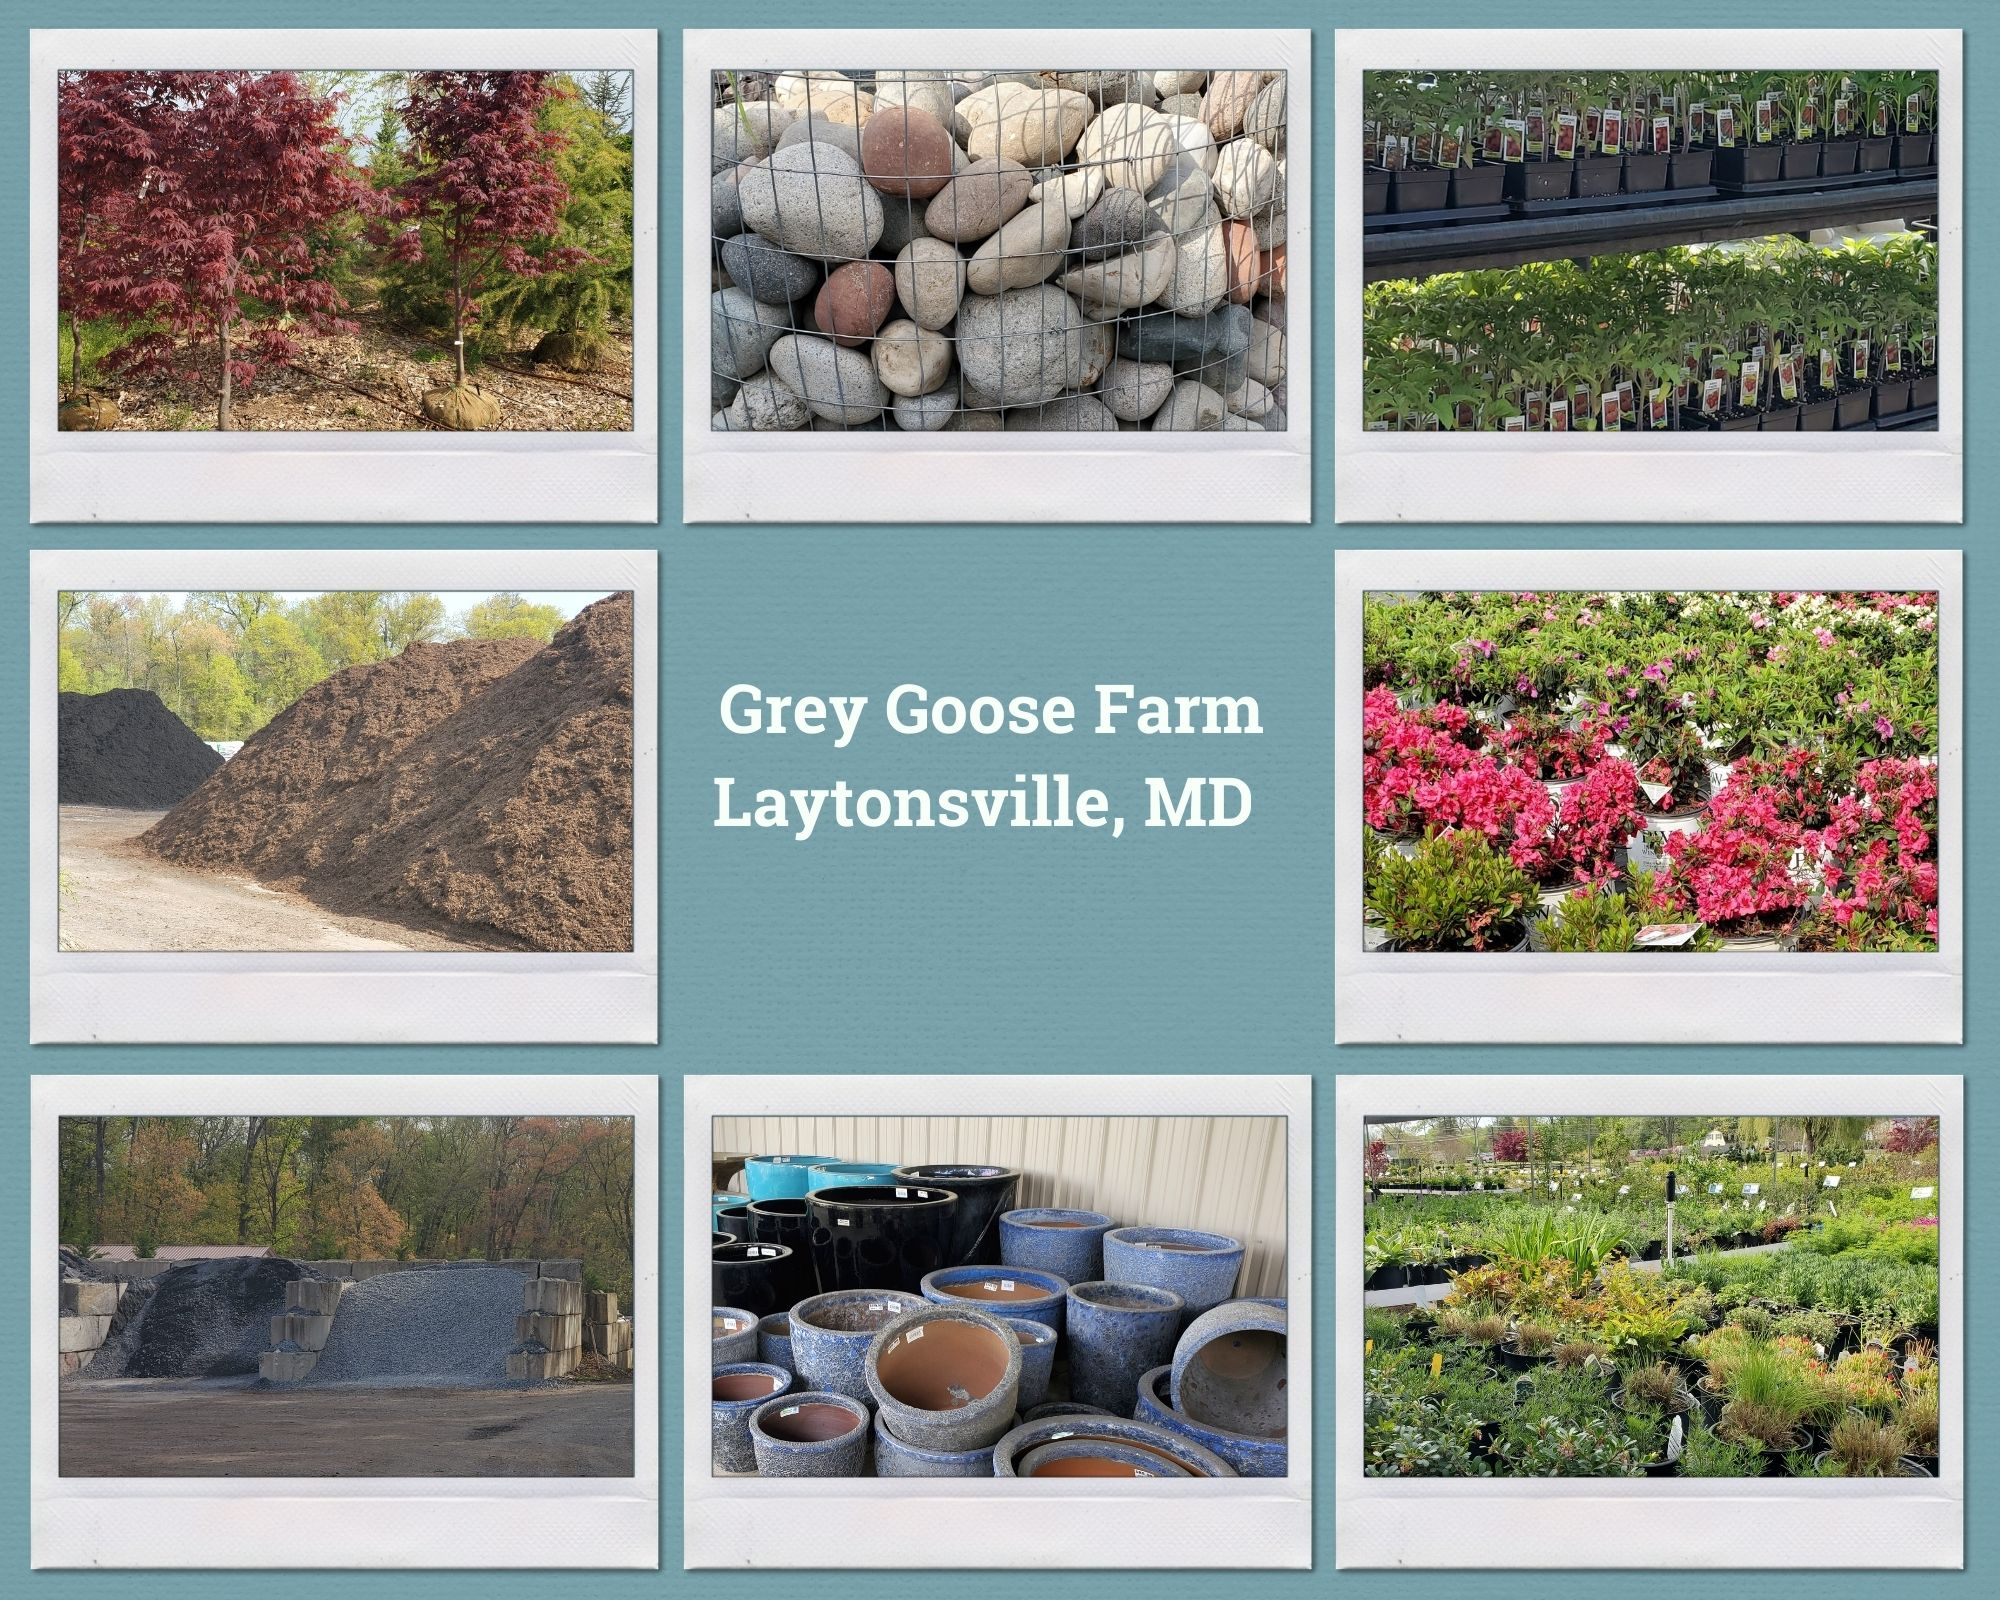 Pictures Of Grey Goose Farm In Laytonsville, Maryland